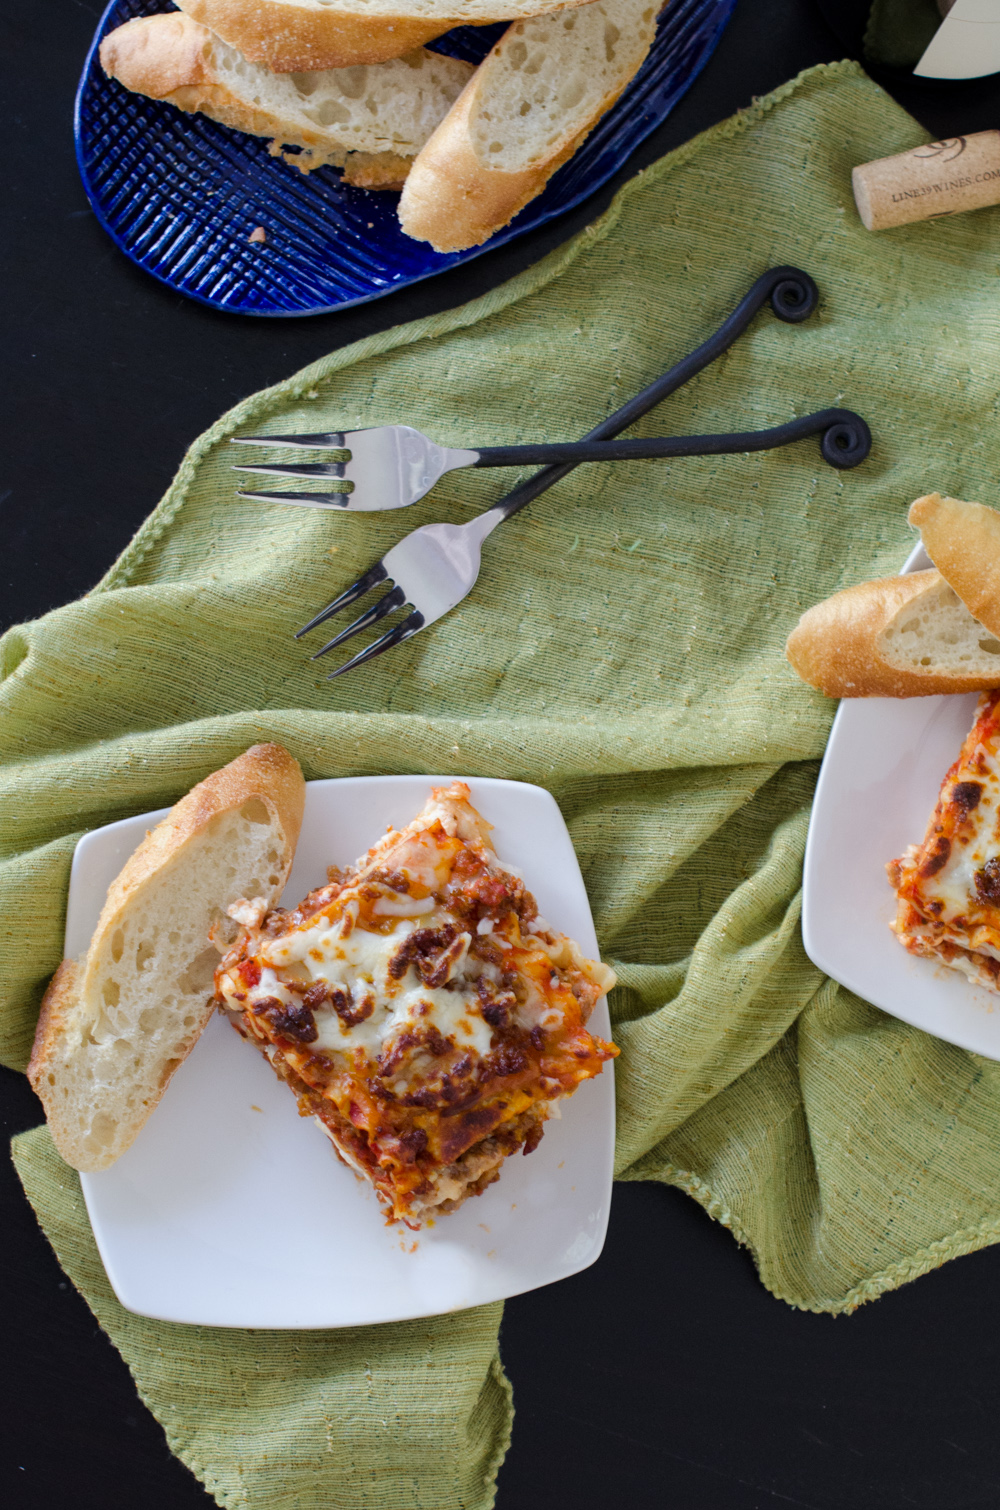 Cheese Attack Lasagna recipe from ChefSarahElizabeth.com